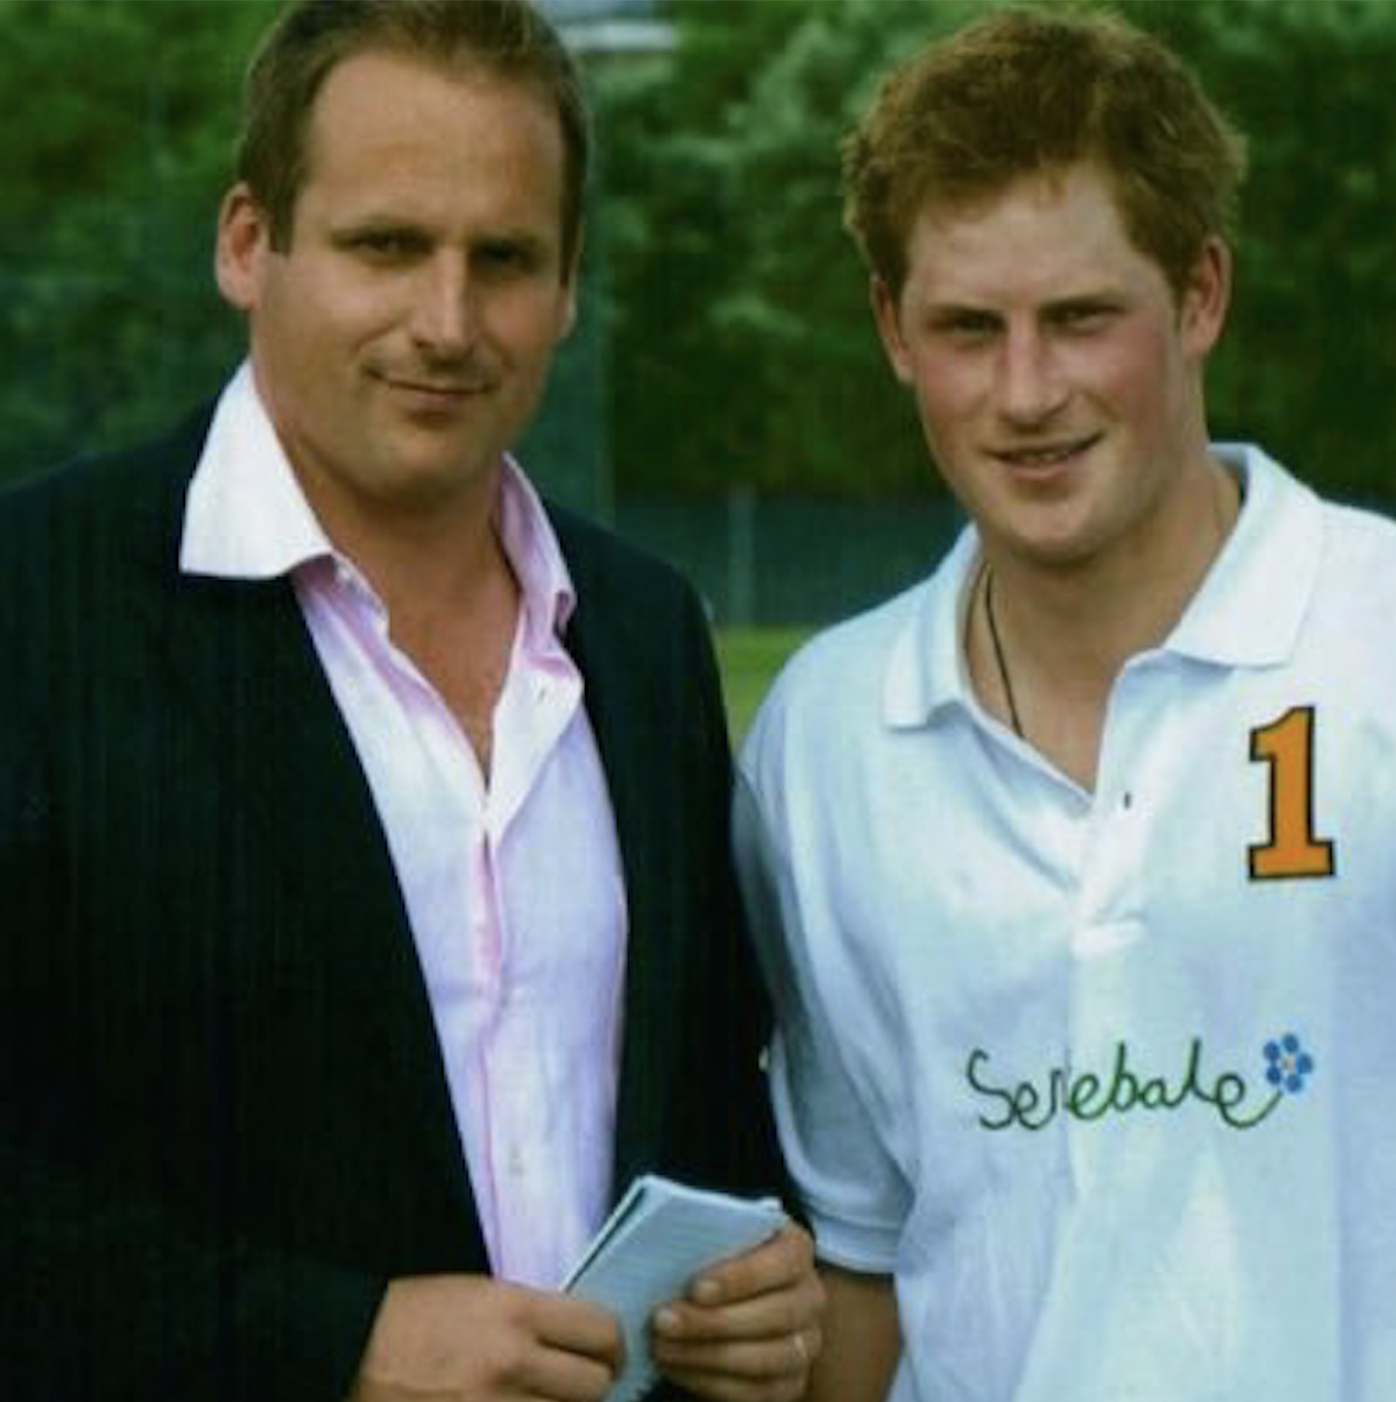 Duncan Larcombe with a more youthful Prince Harry (c) Twitter @DuncanLarcombe